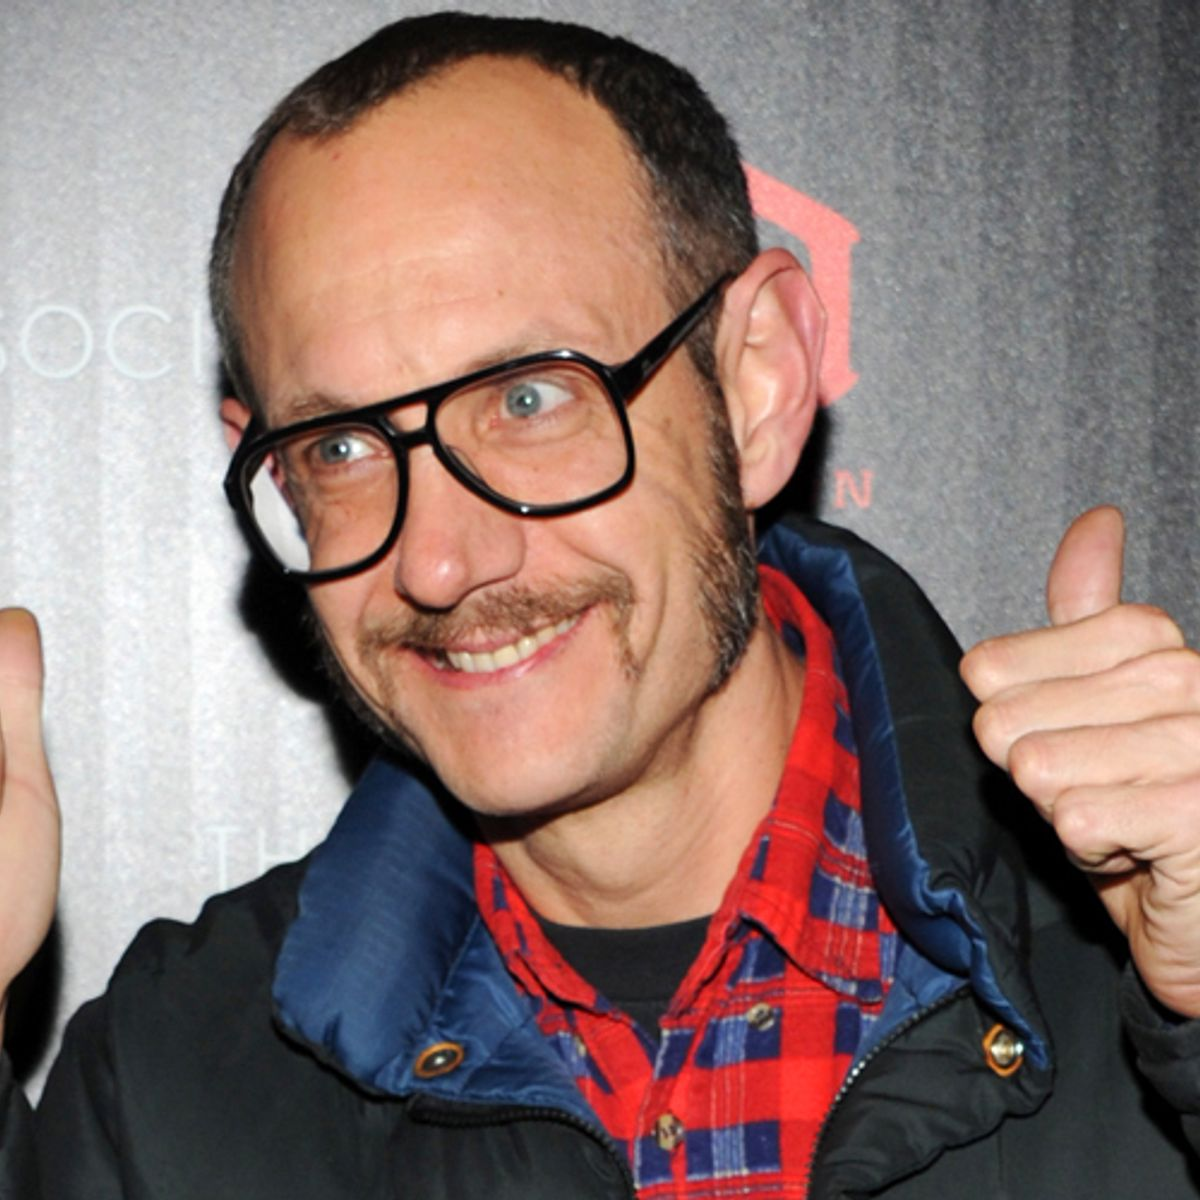 terry_richardson.jpg